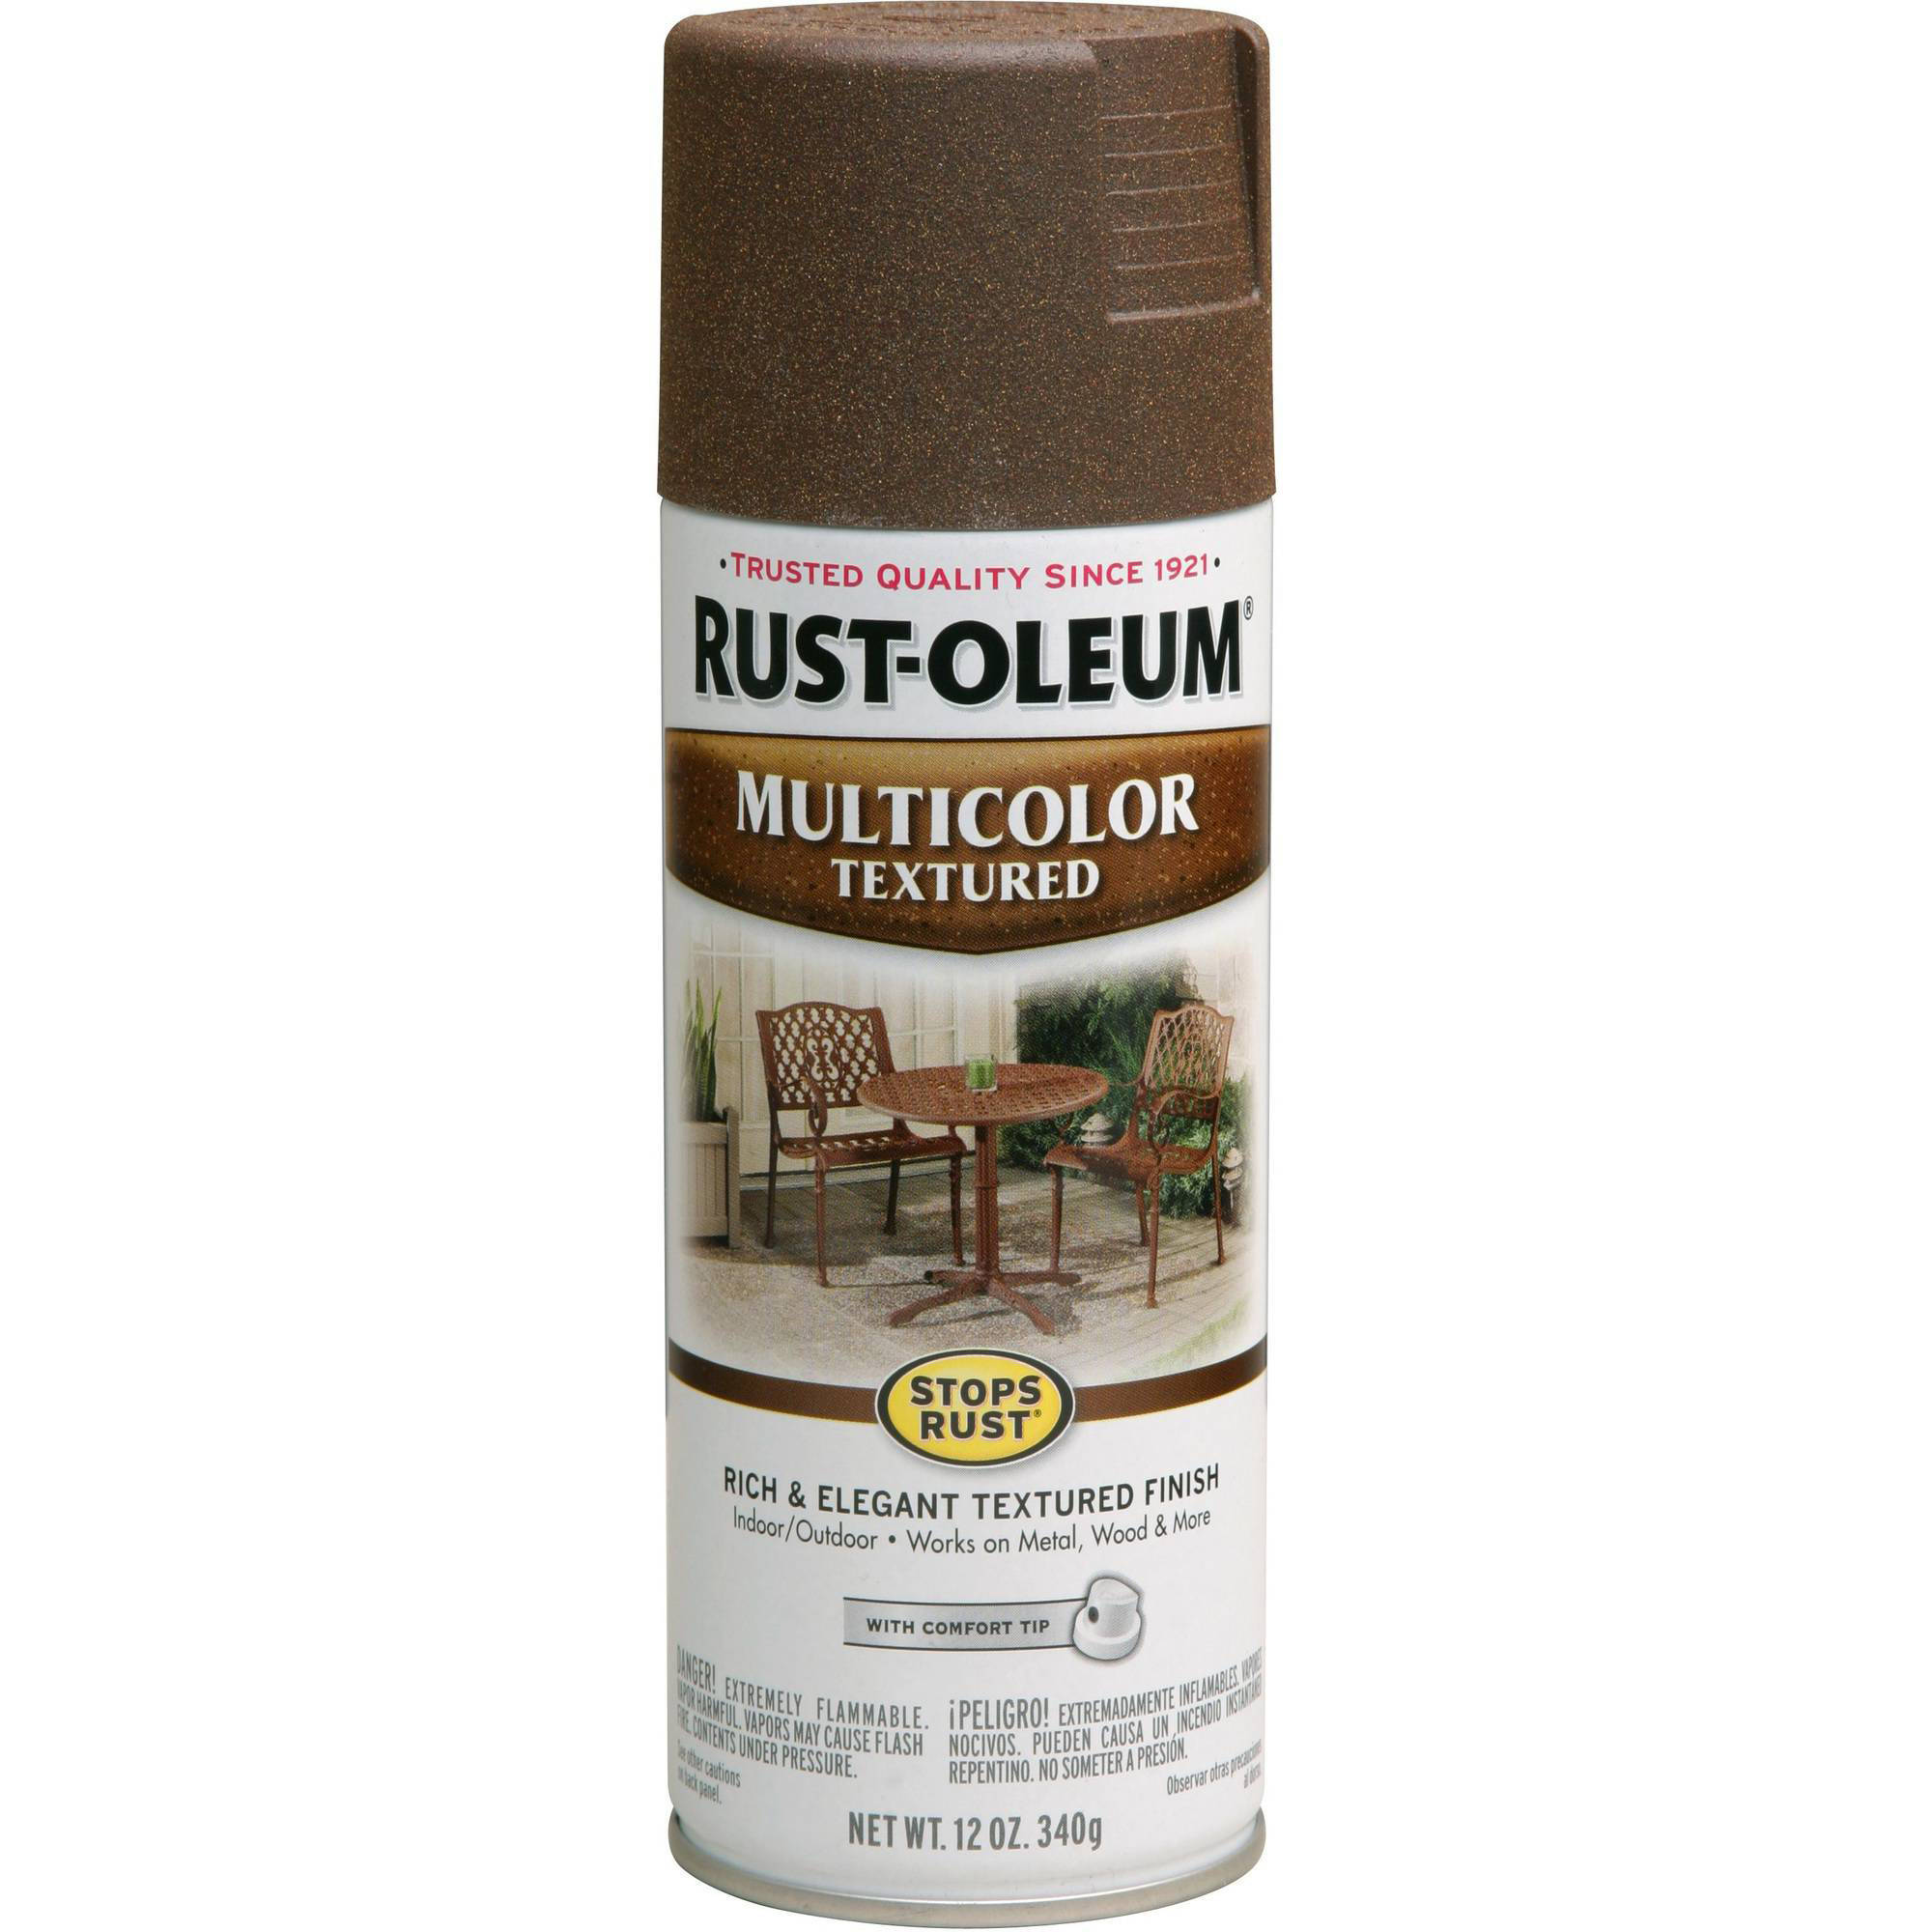 Rust-Oleum Stops Rust Multicolor Textured Spray Paint